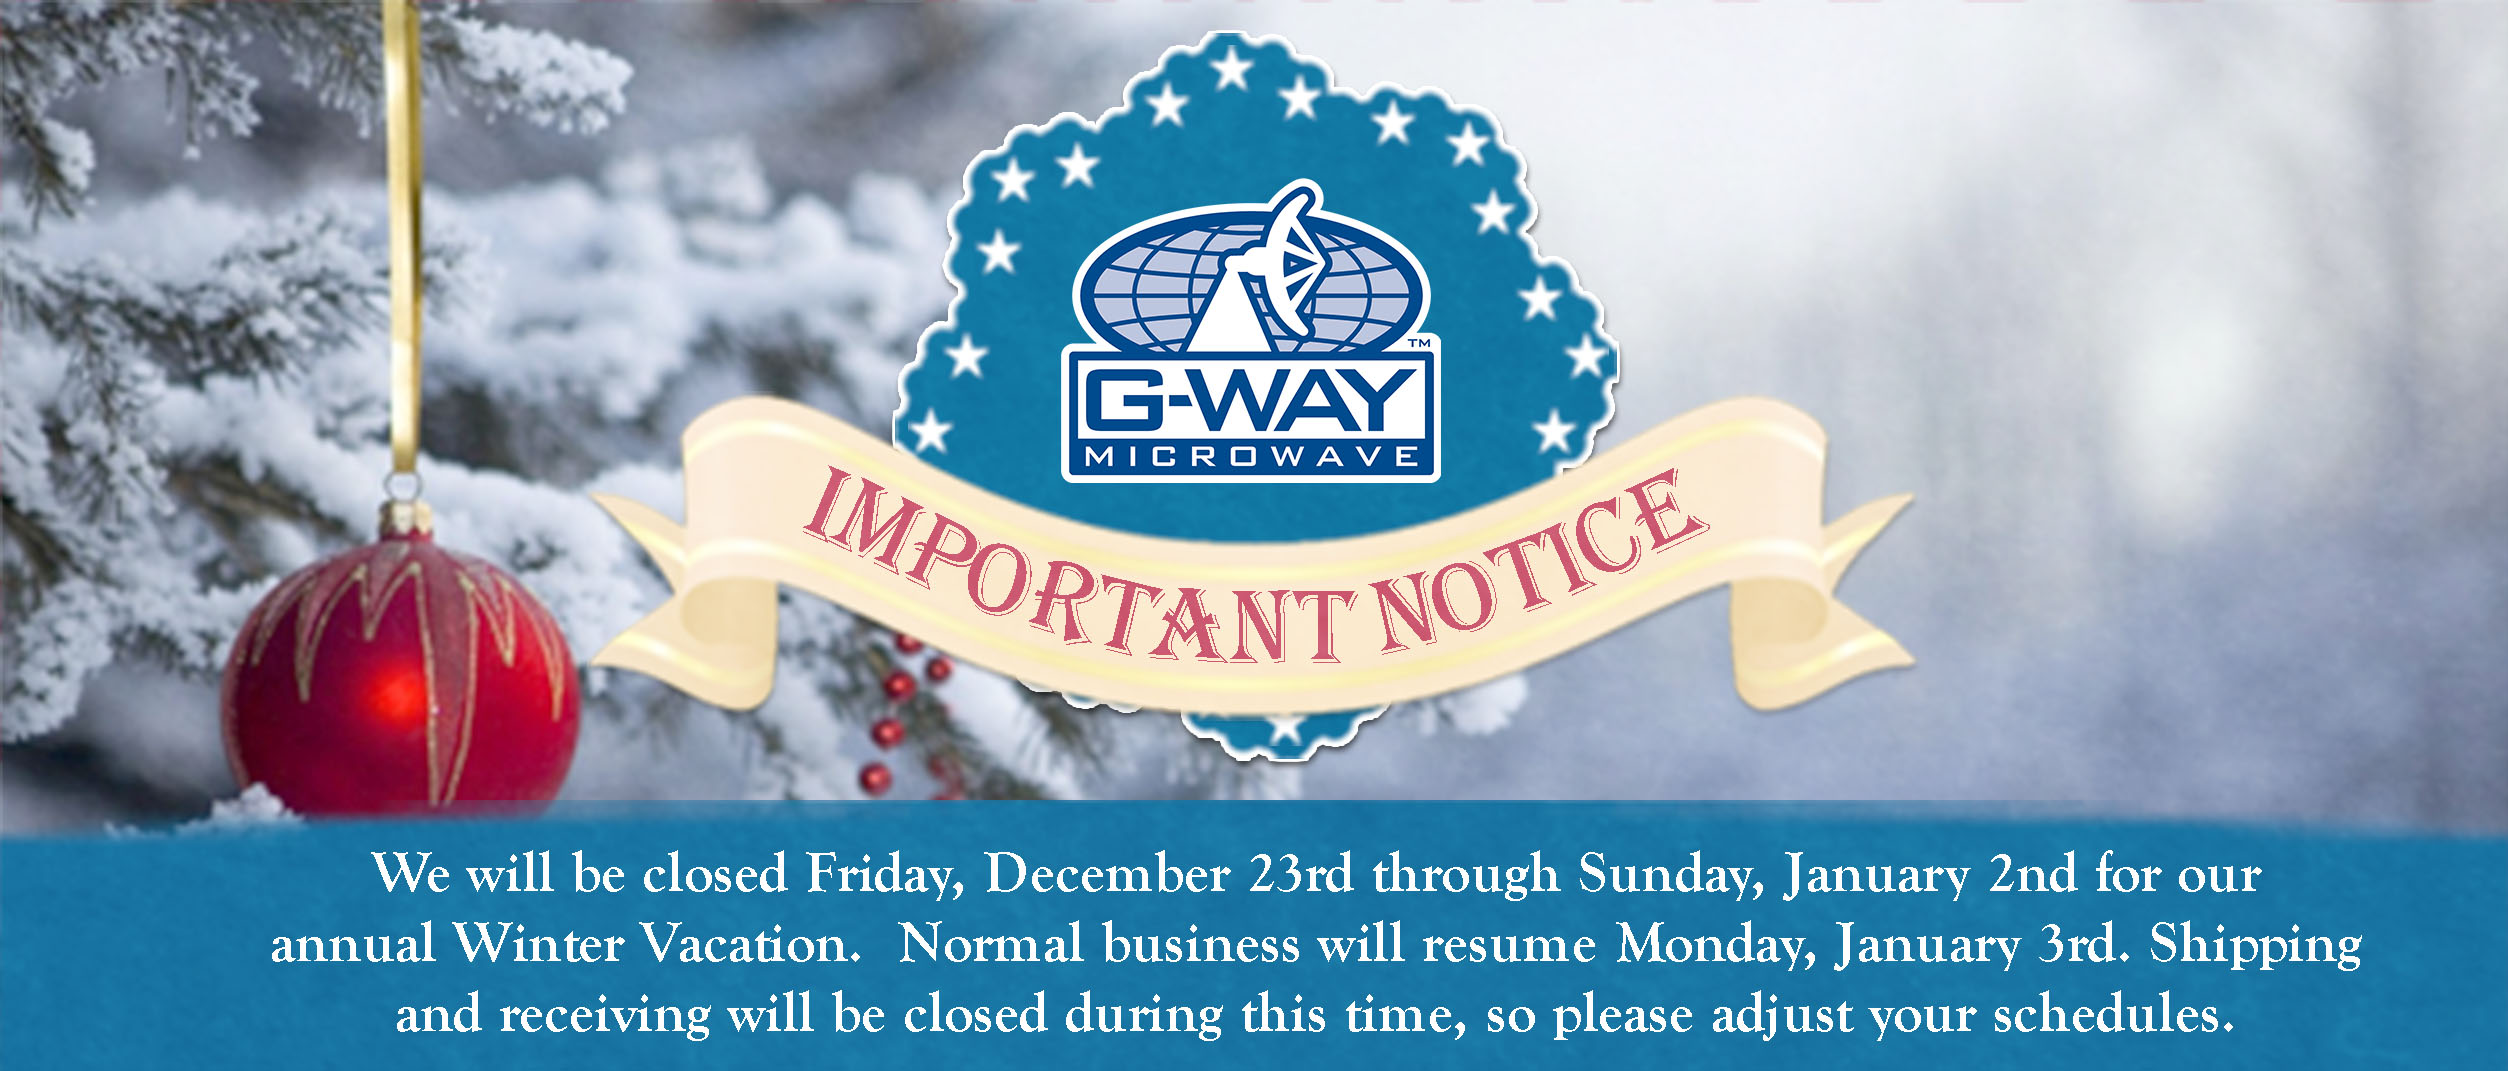 G-Way website banner holiday